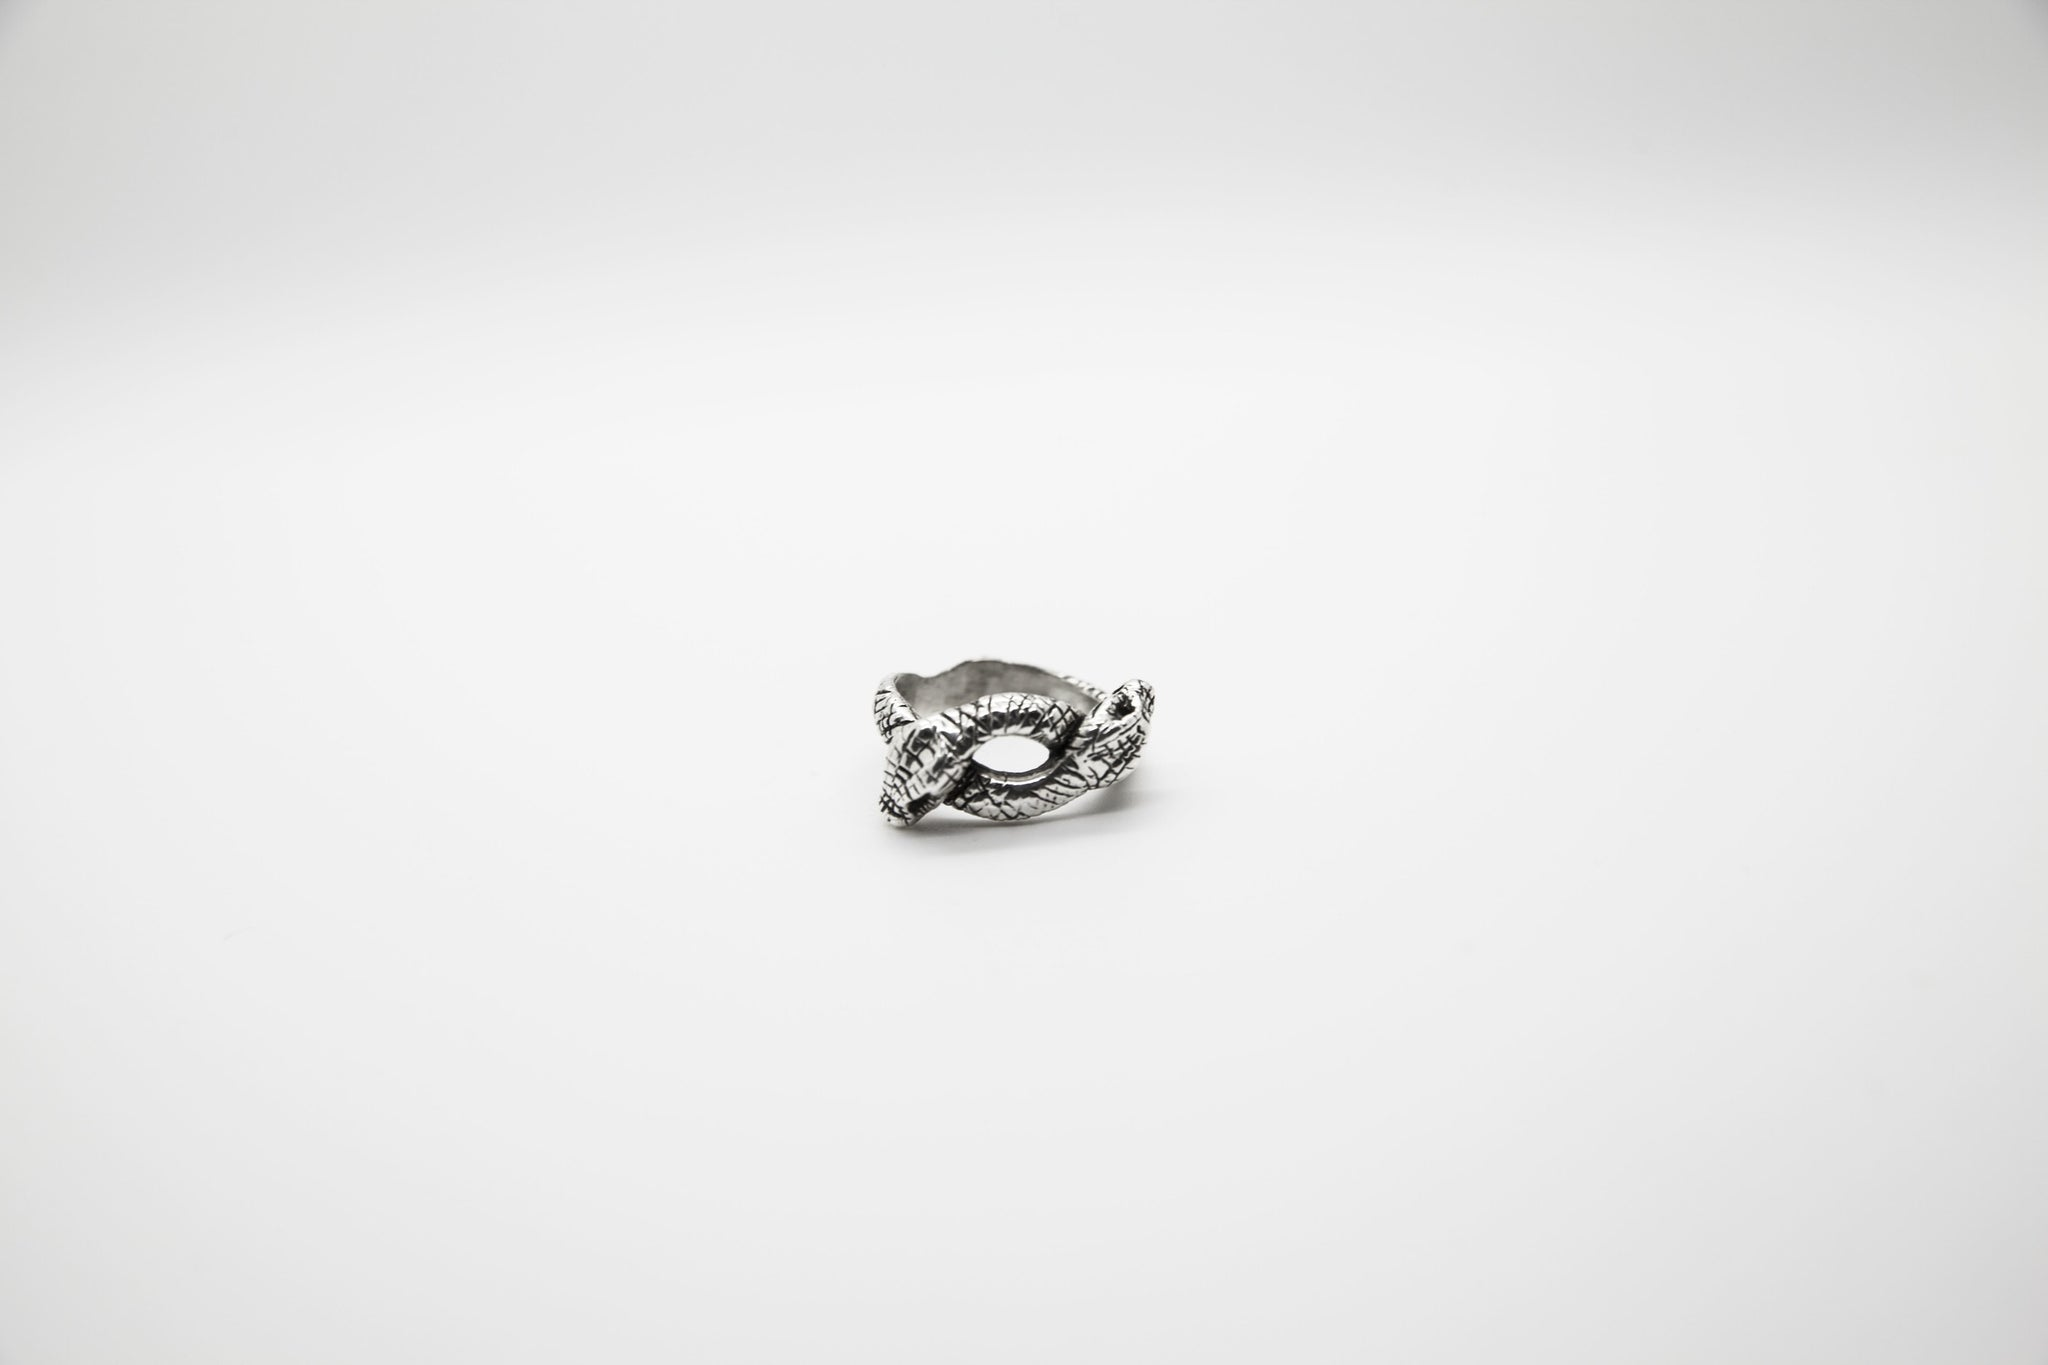 Twin Serpents Ring - The Silver Stone